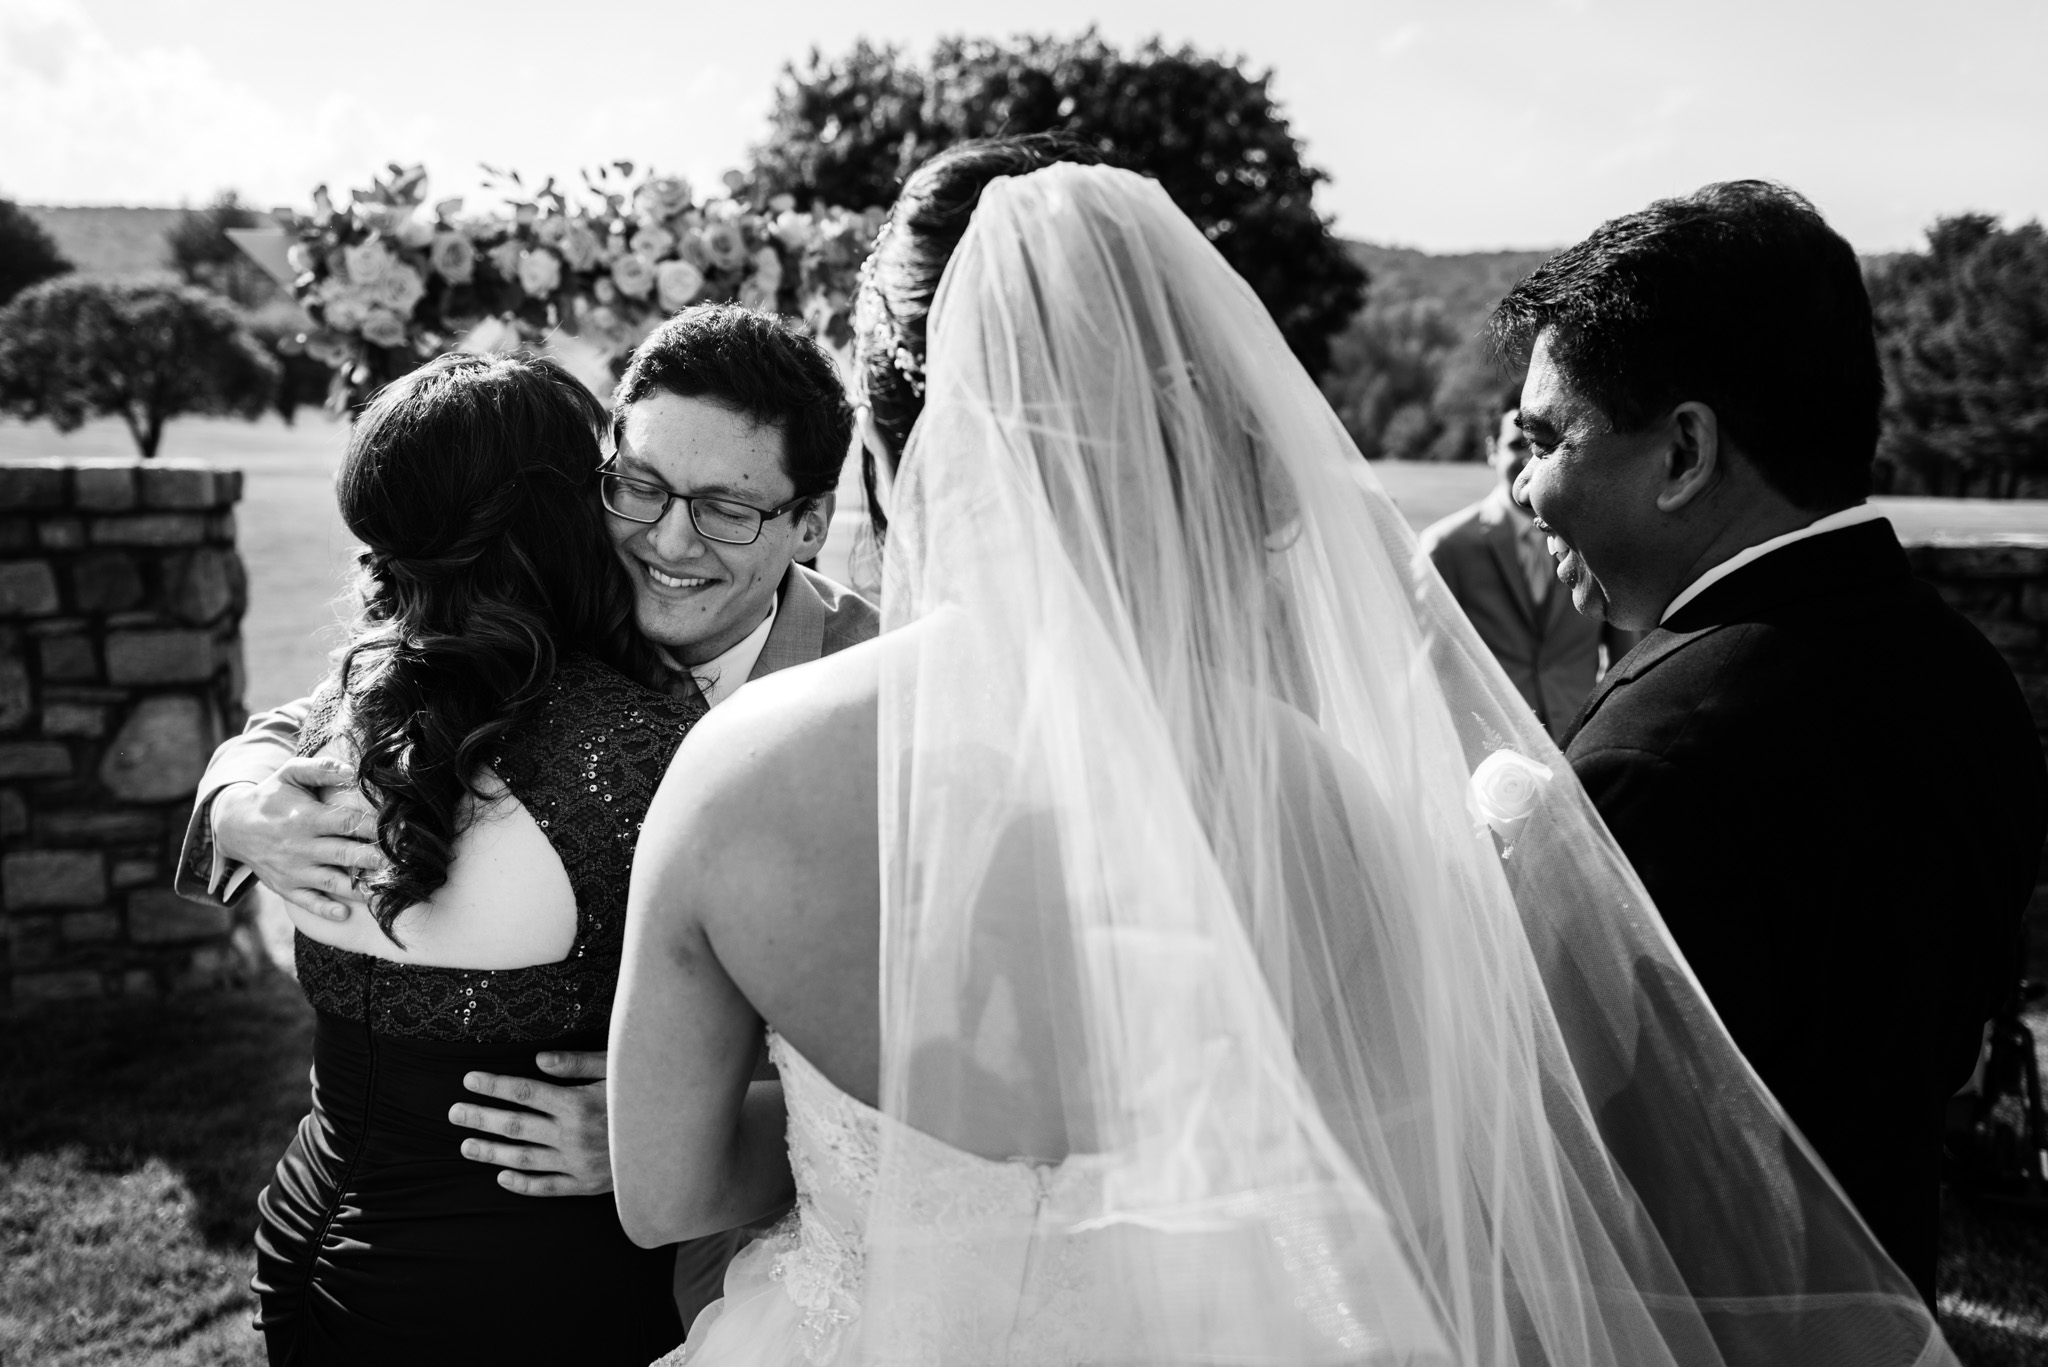 Grant and April's wedding at Evergreen Country Club